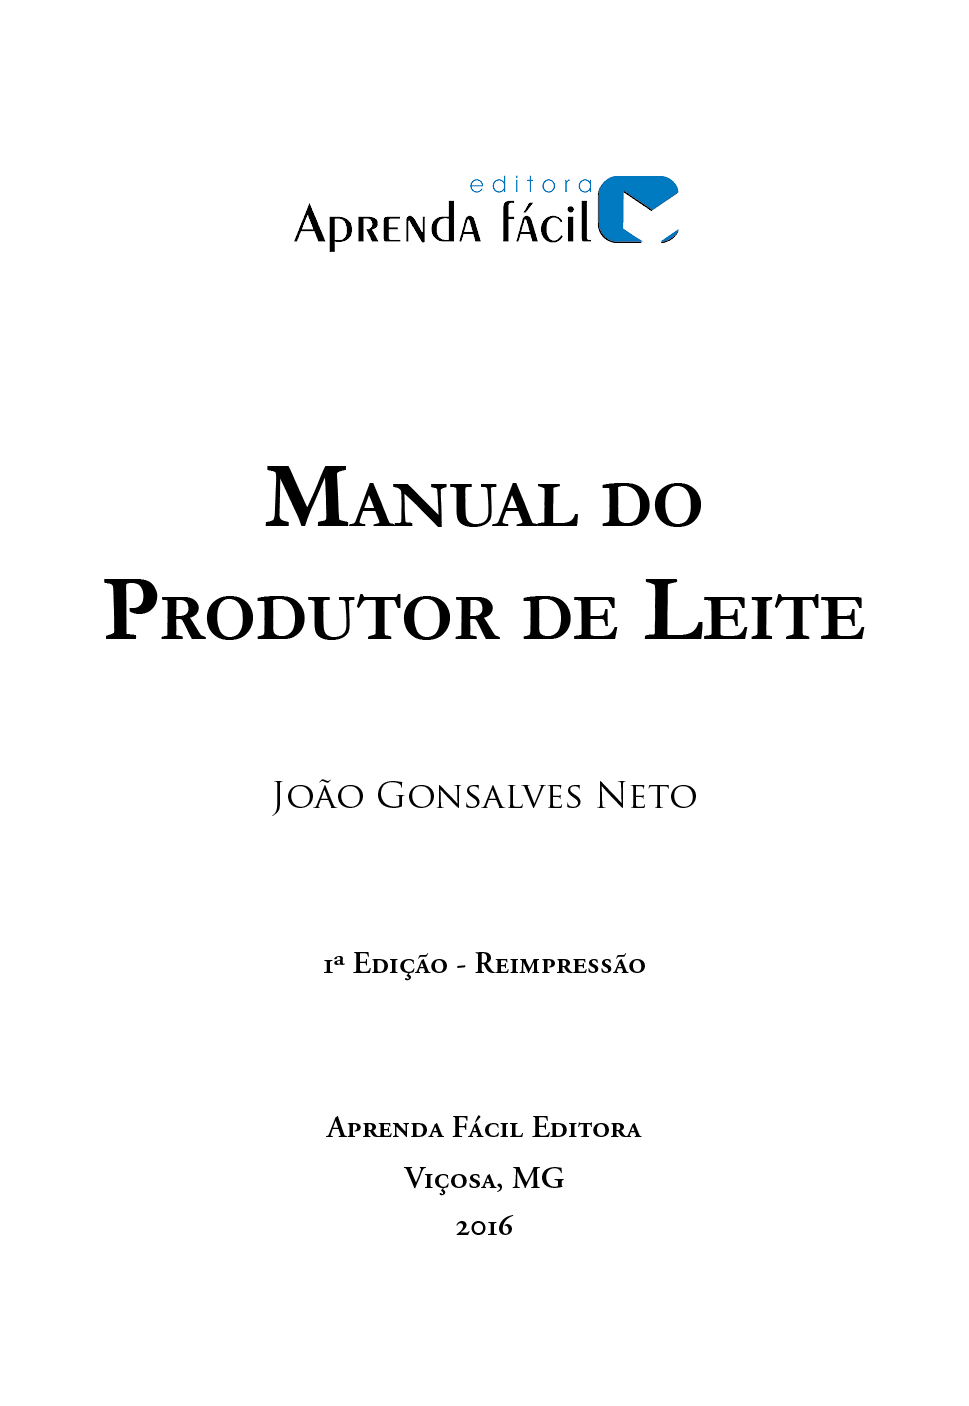 Manual do Produtor de Leite